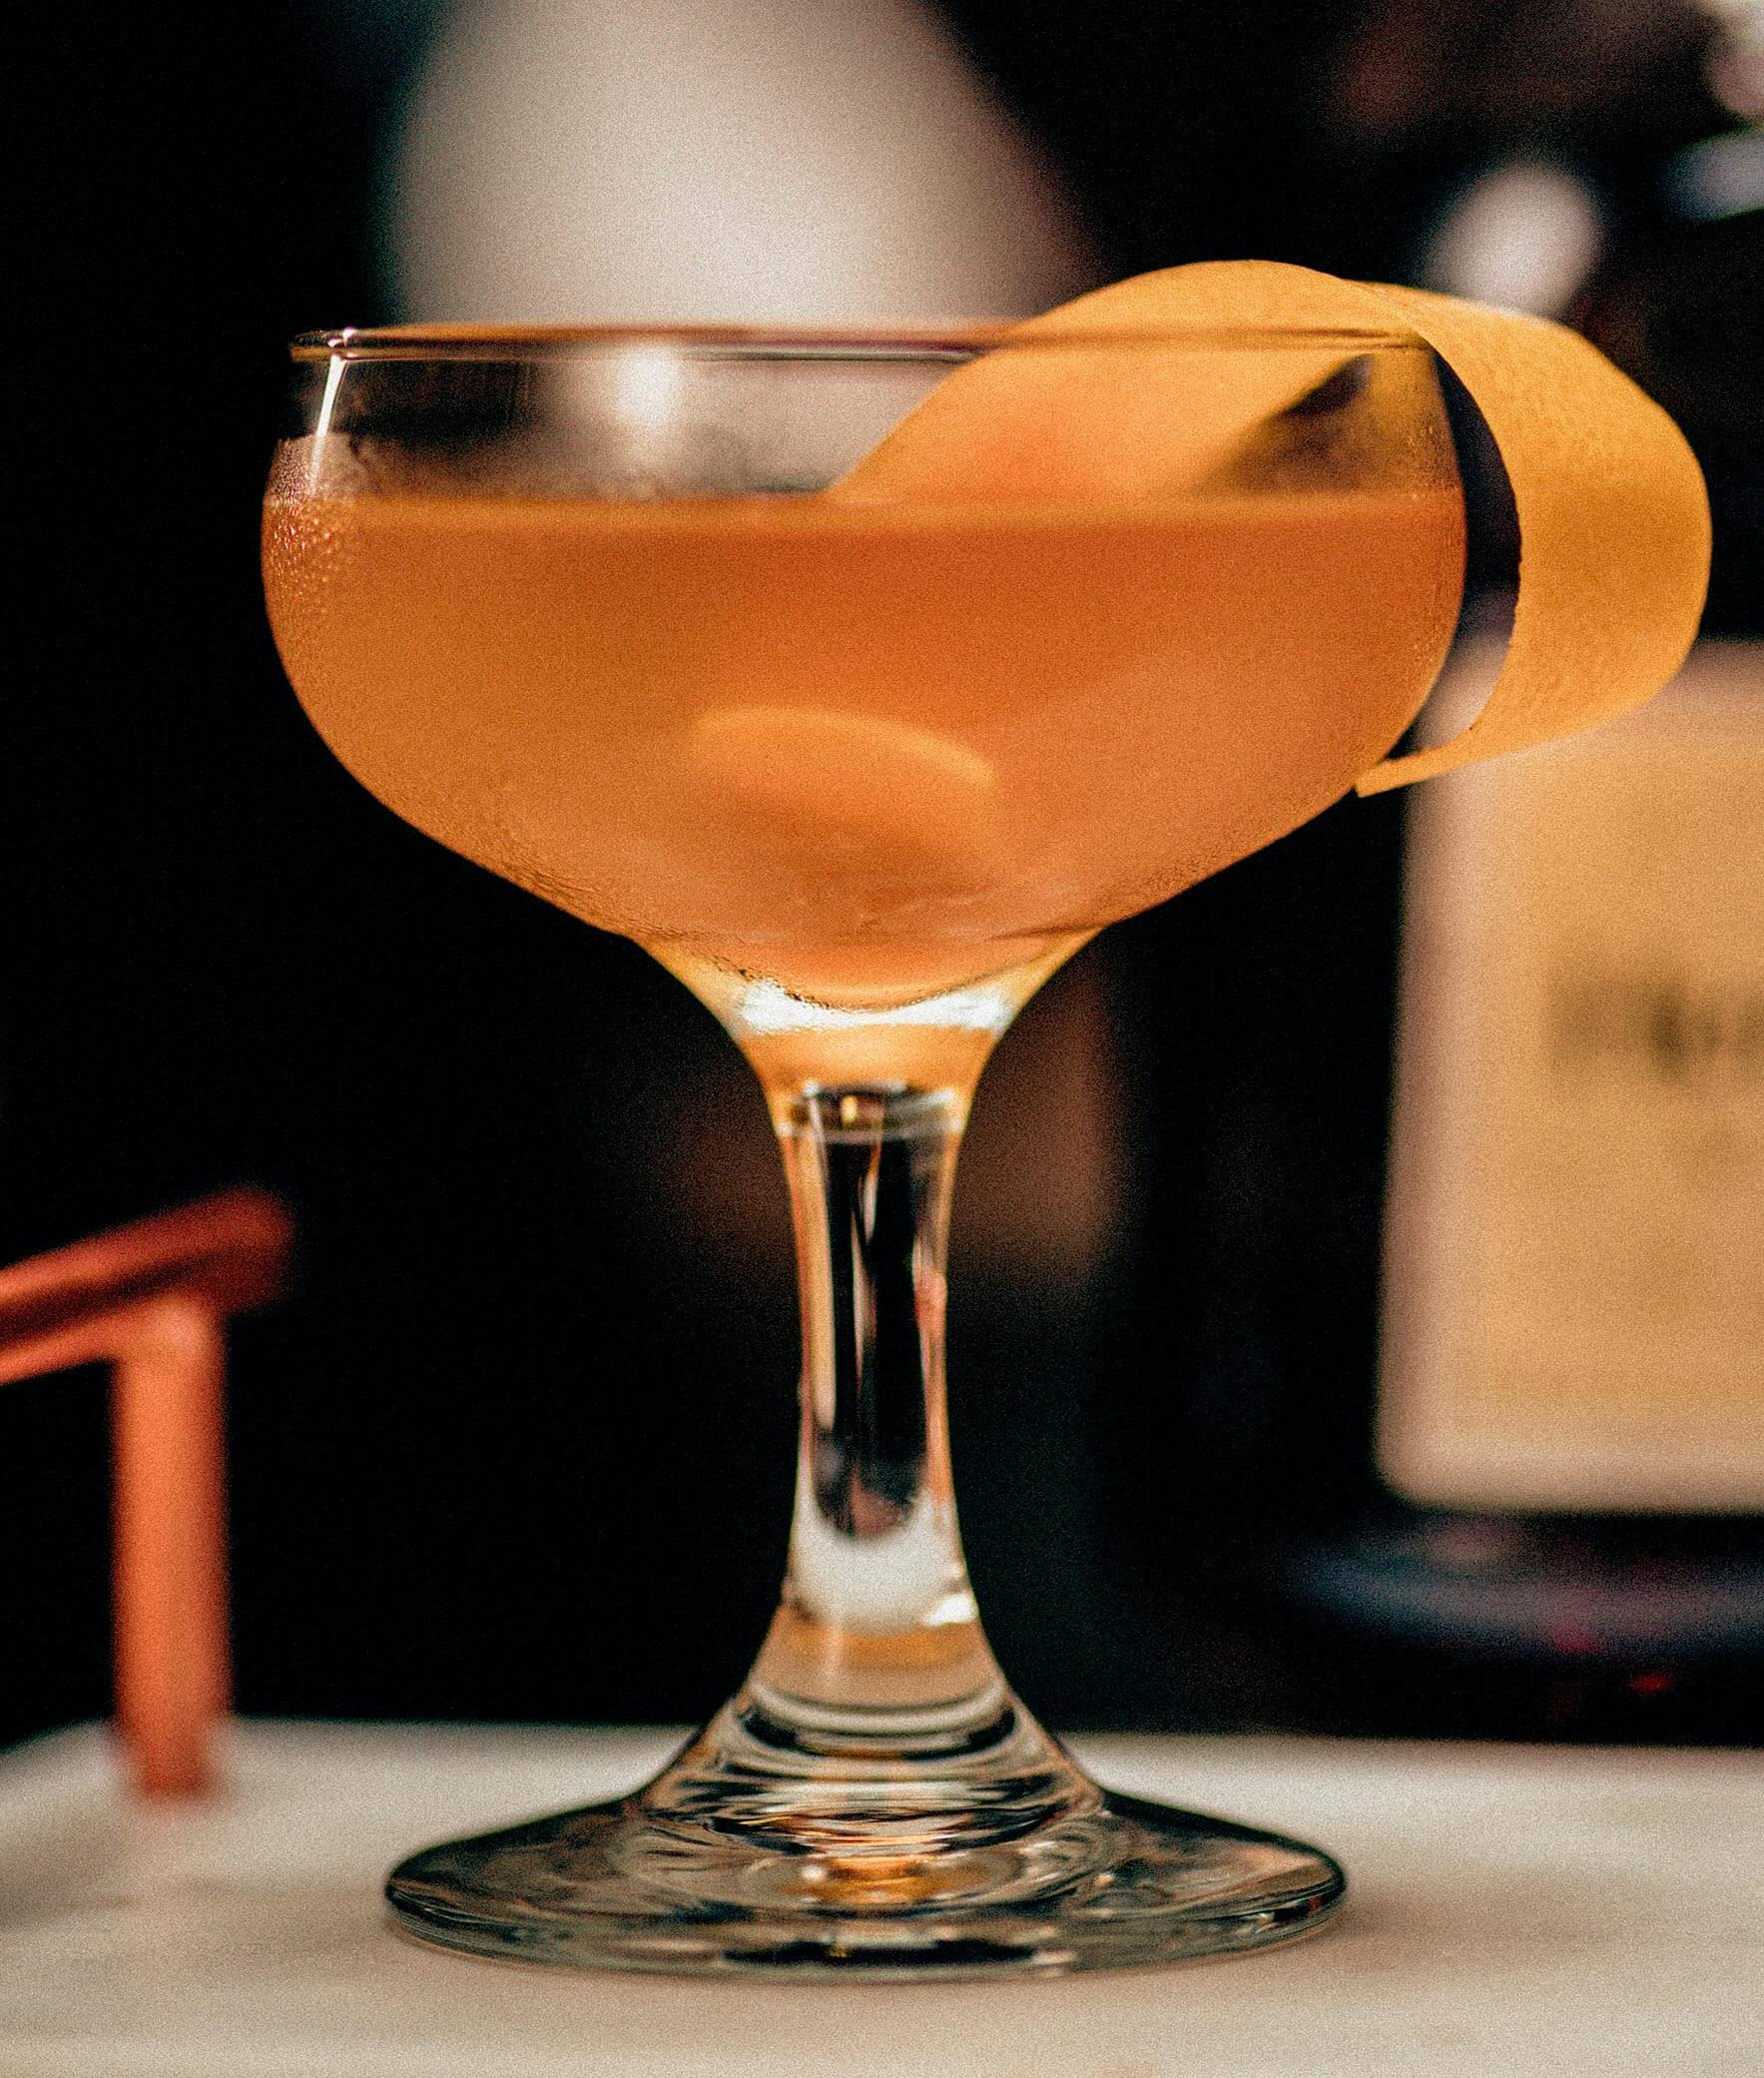 Cognac Sidecar, cocktail with orange peel garnish